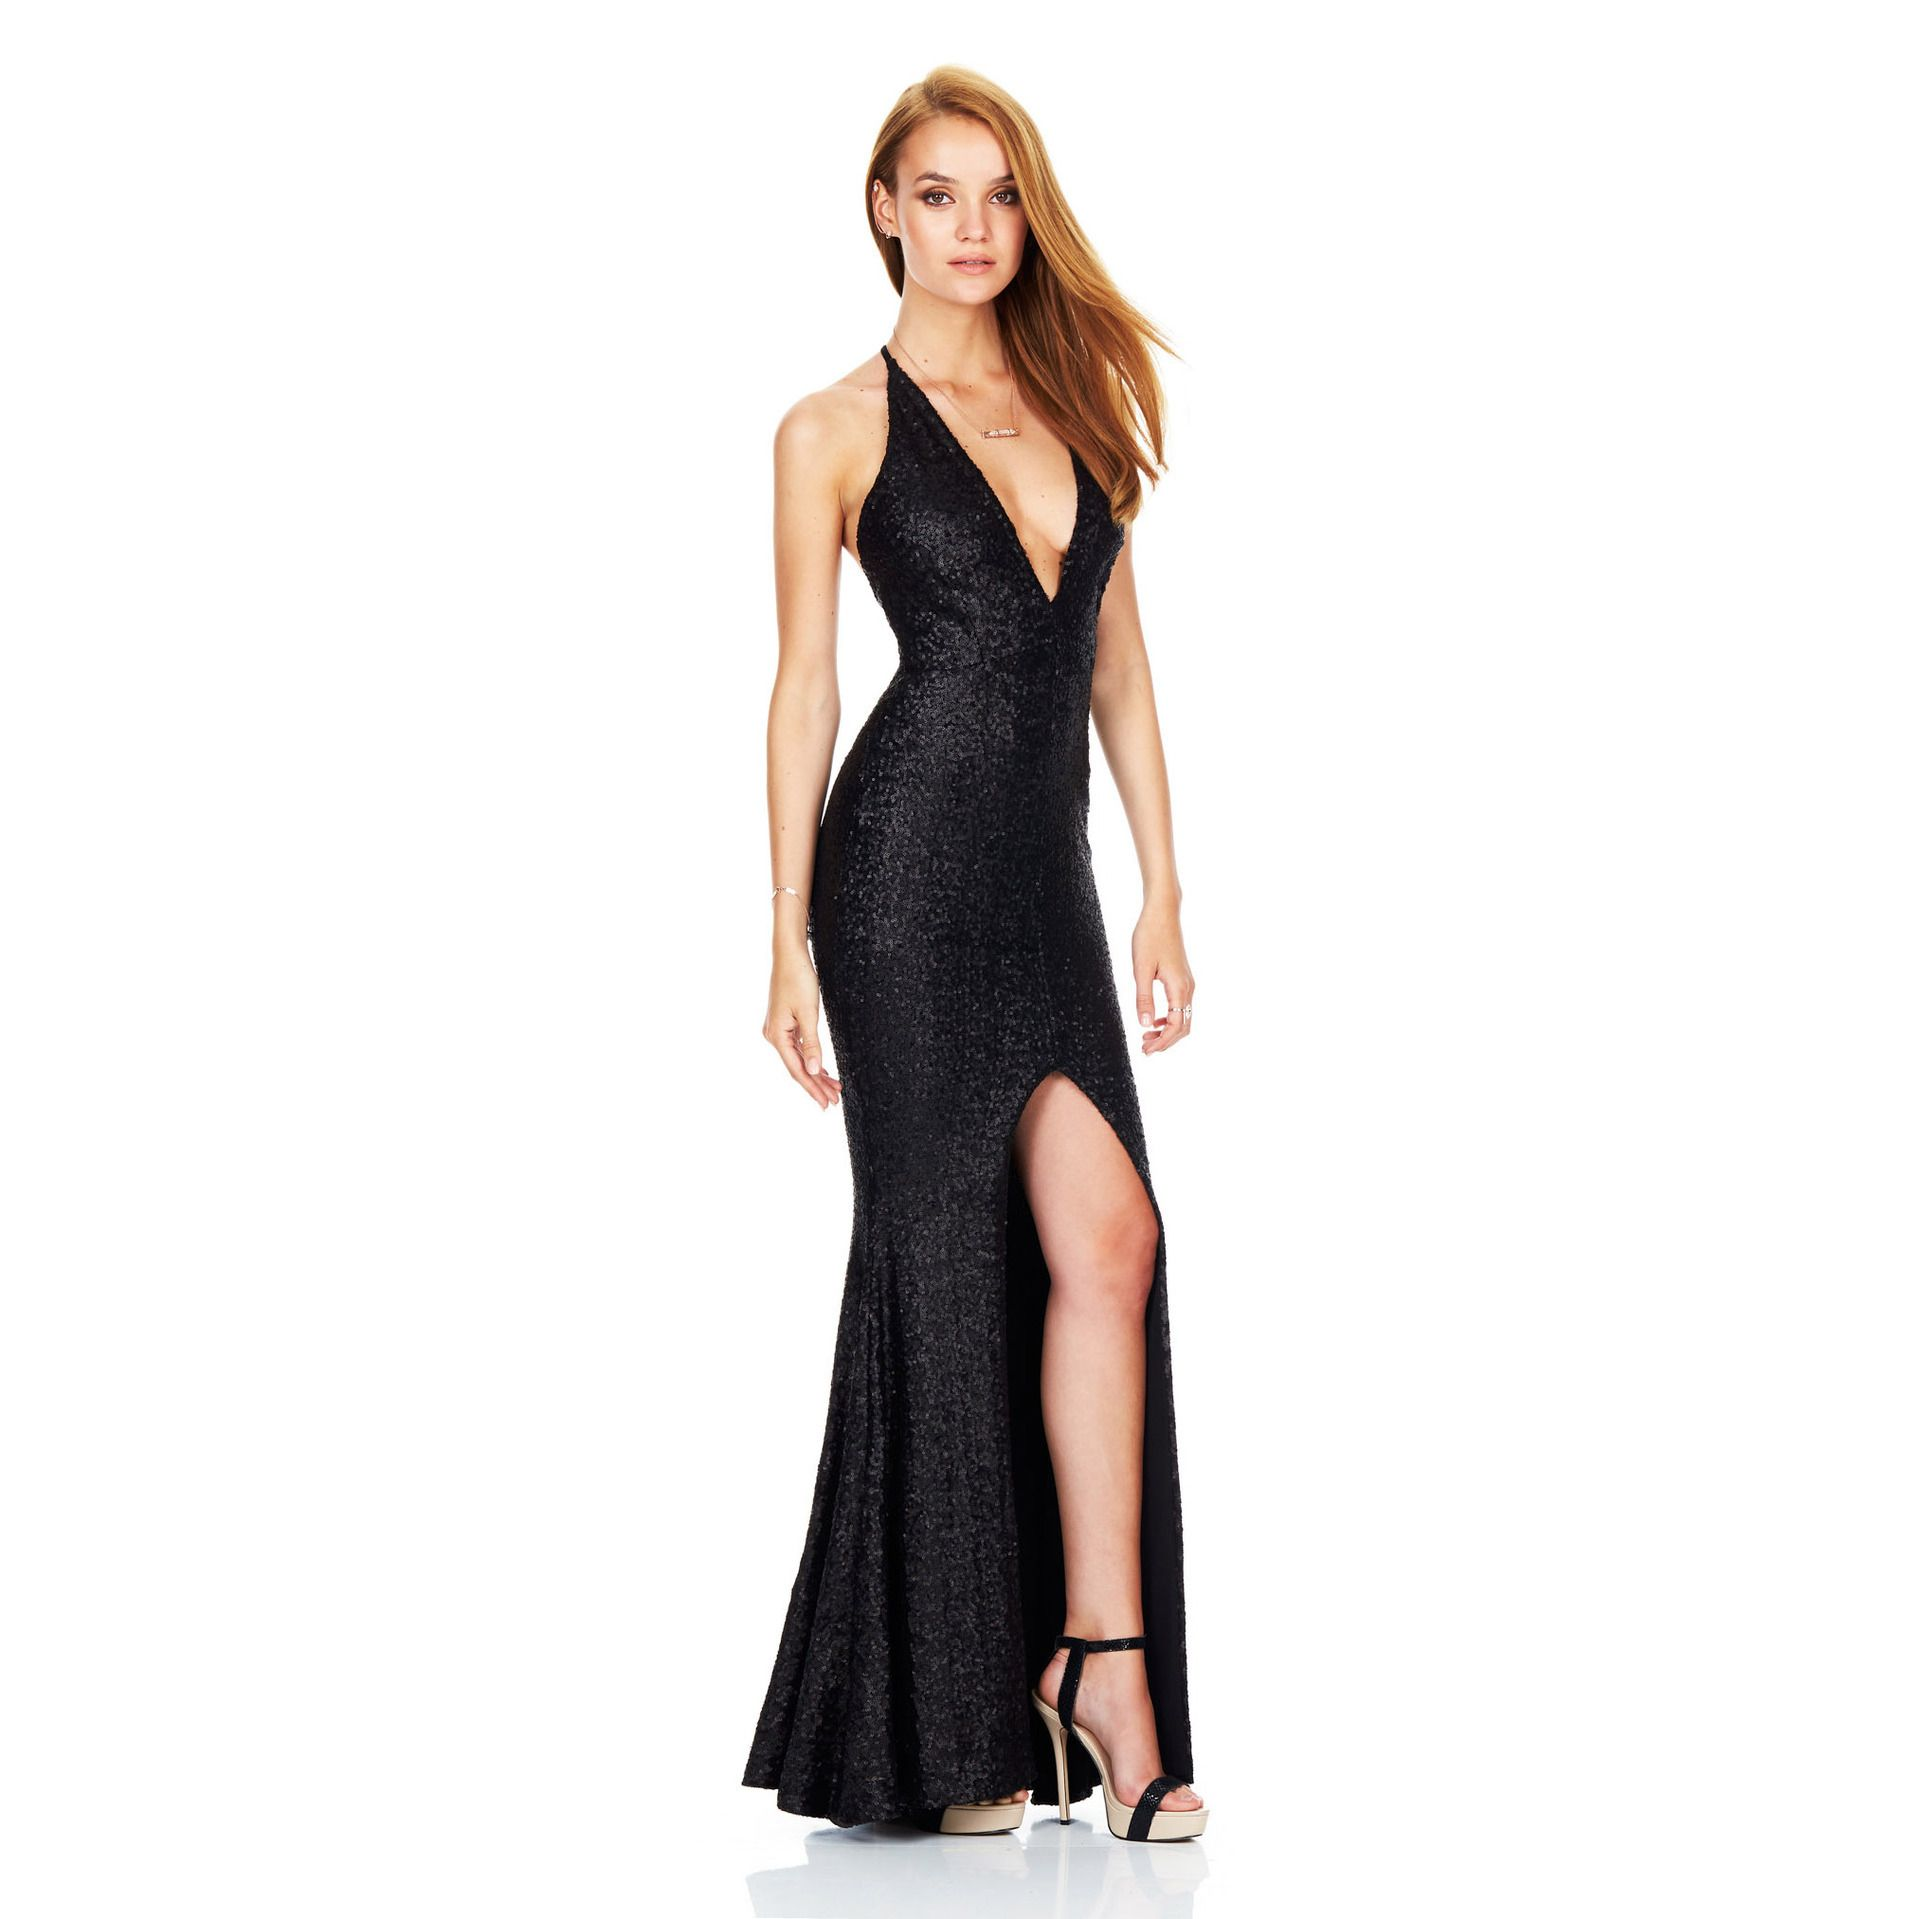 Black Deep V-Neck Halter Women Bodycon Sequins Evening Dress ... b76ab9760bc7